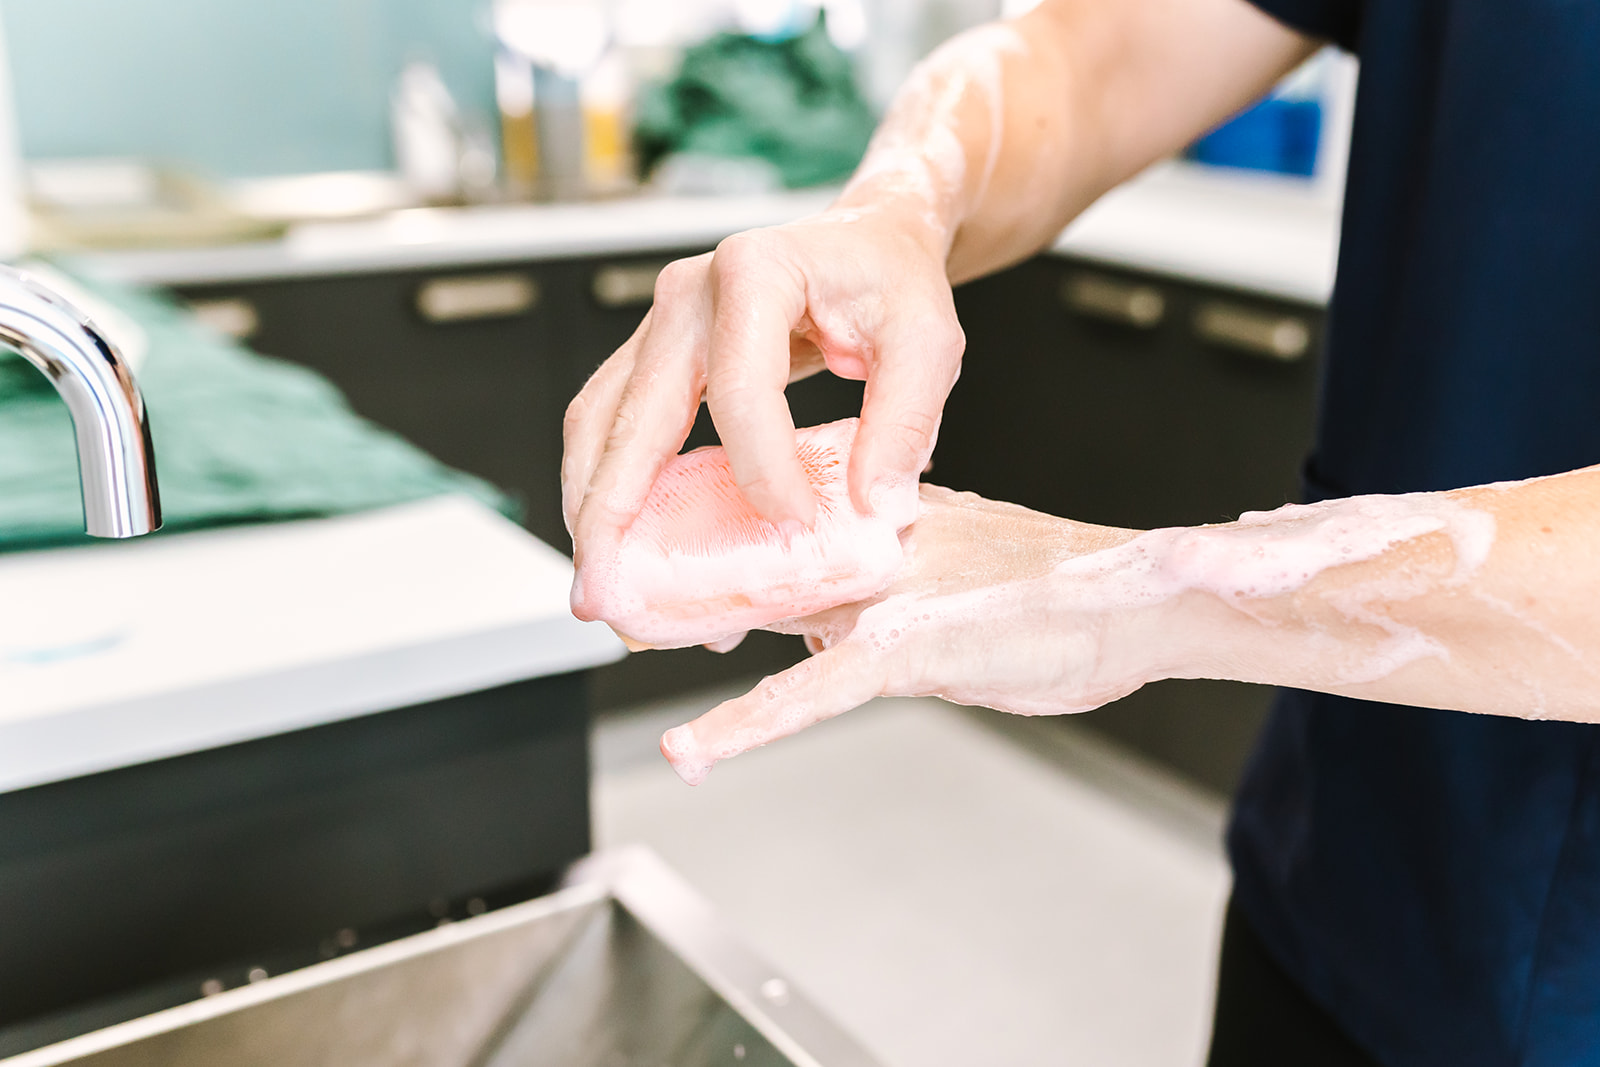 Module 8: Infection prevention and control